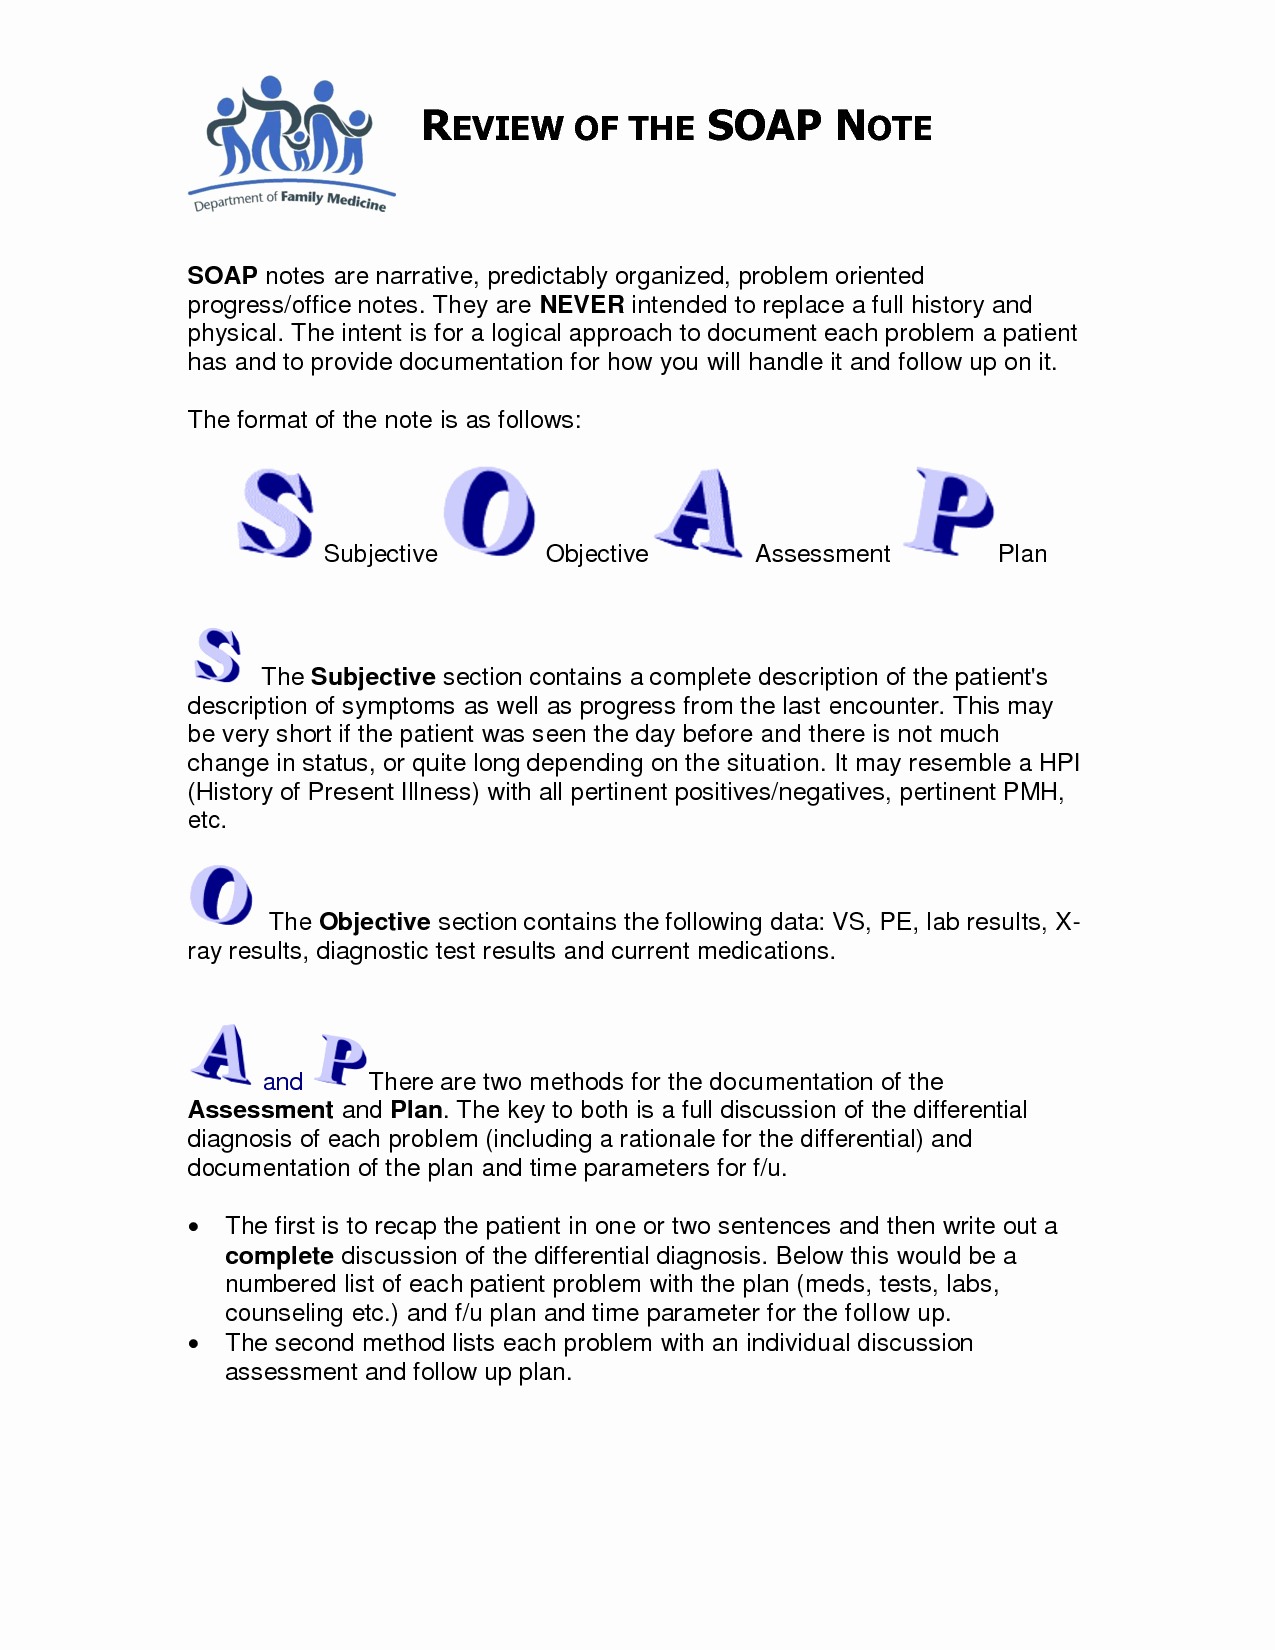 Soap Documentation Example Fresh soap Note Template Counseling Google Search